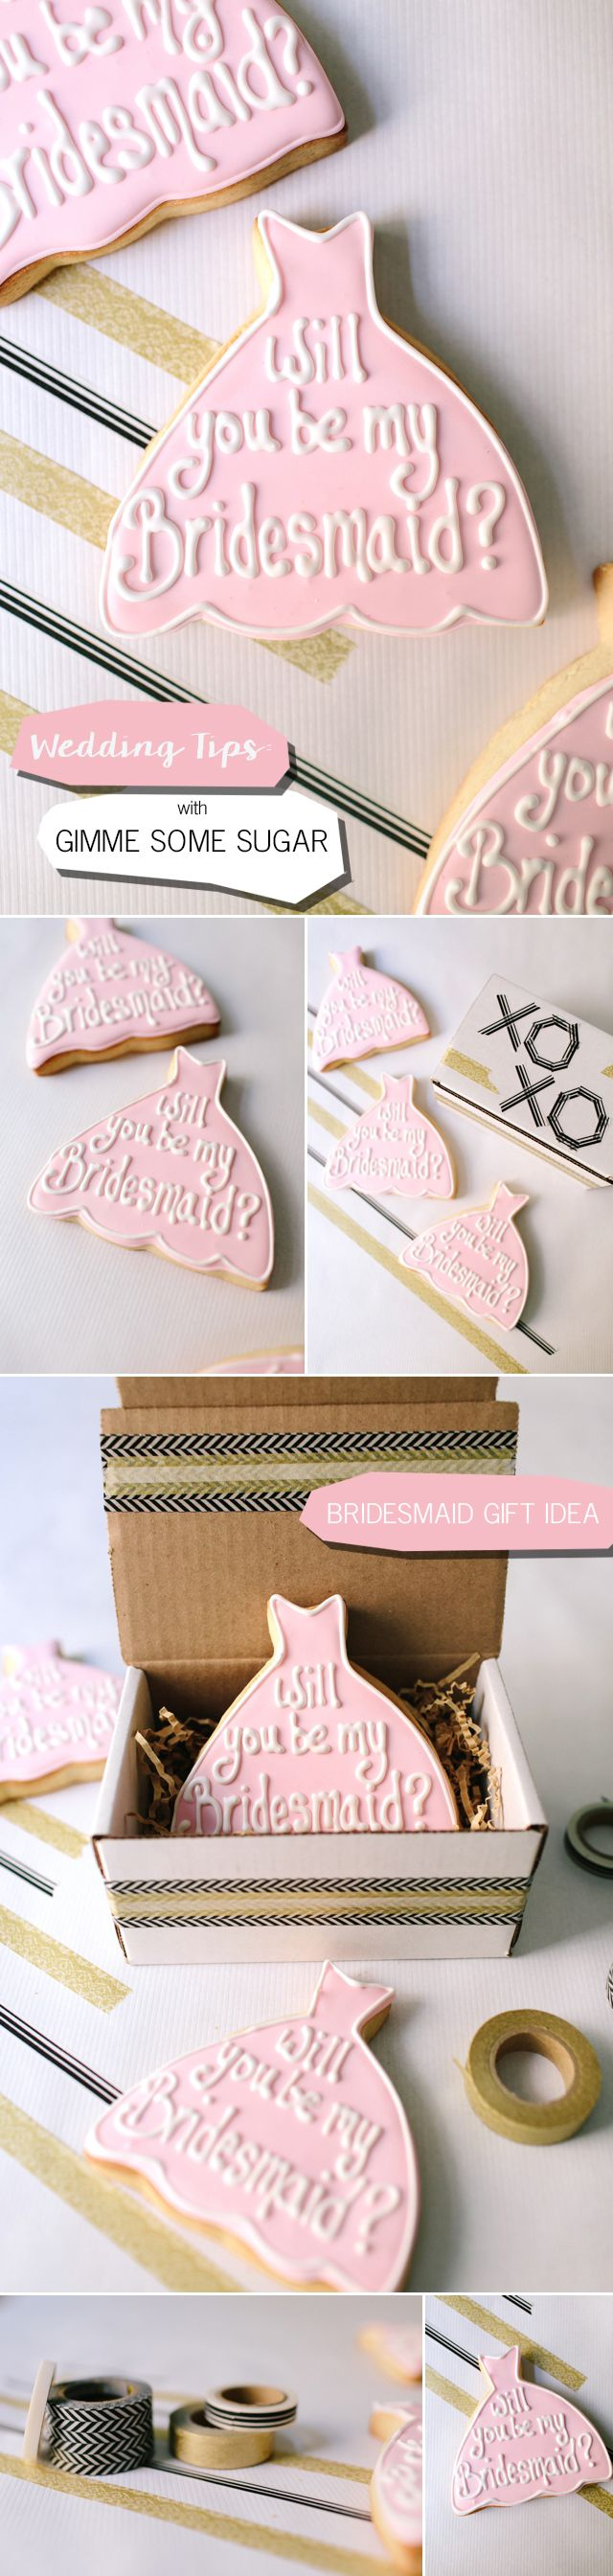 Gimme Some Sugar Cookies Bridesmaid Gift Custom Cookies Las Vegas  | Meg Ruth Photo | Bridesmaid Gift | Will You Be My Bridesmaid Cookies | Creative Bridesmaid Gift